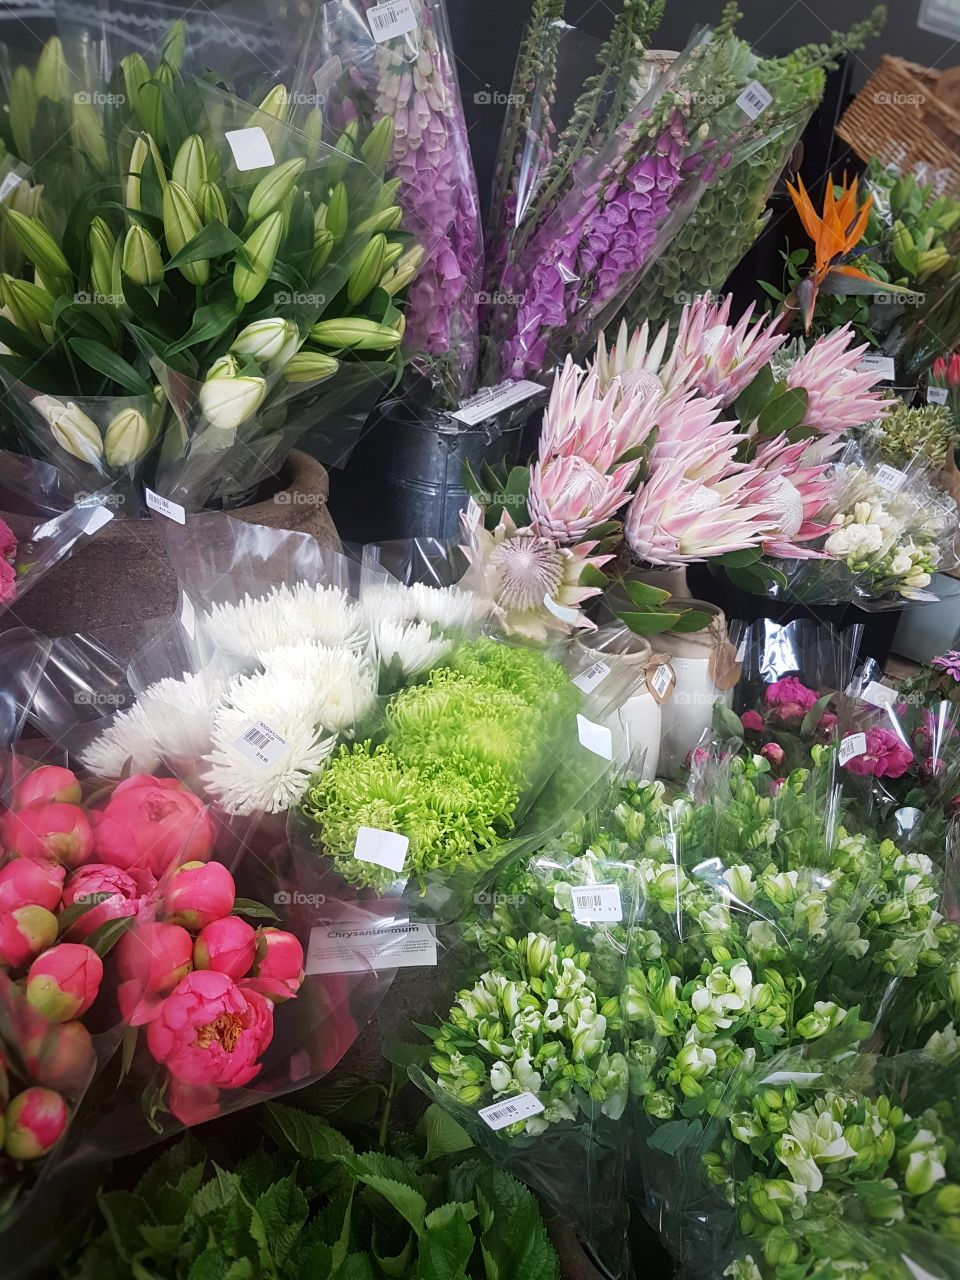 Fresh Bunches of Flowers at market stall pretty